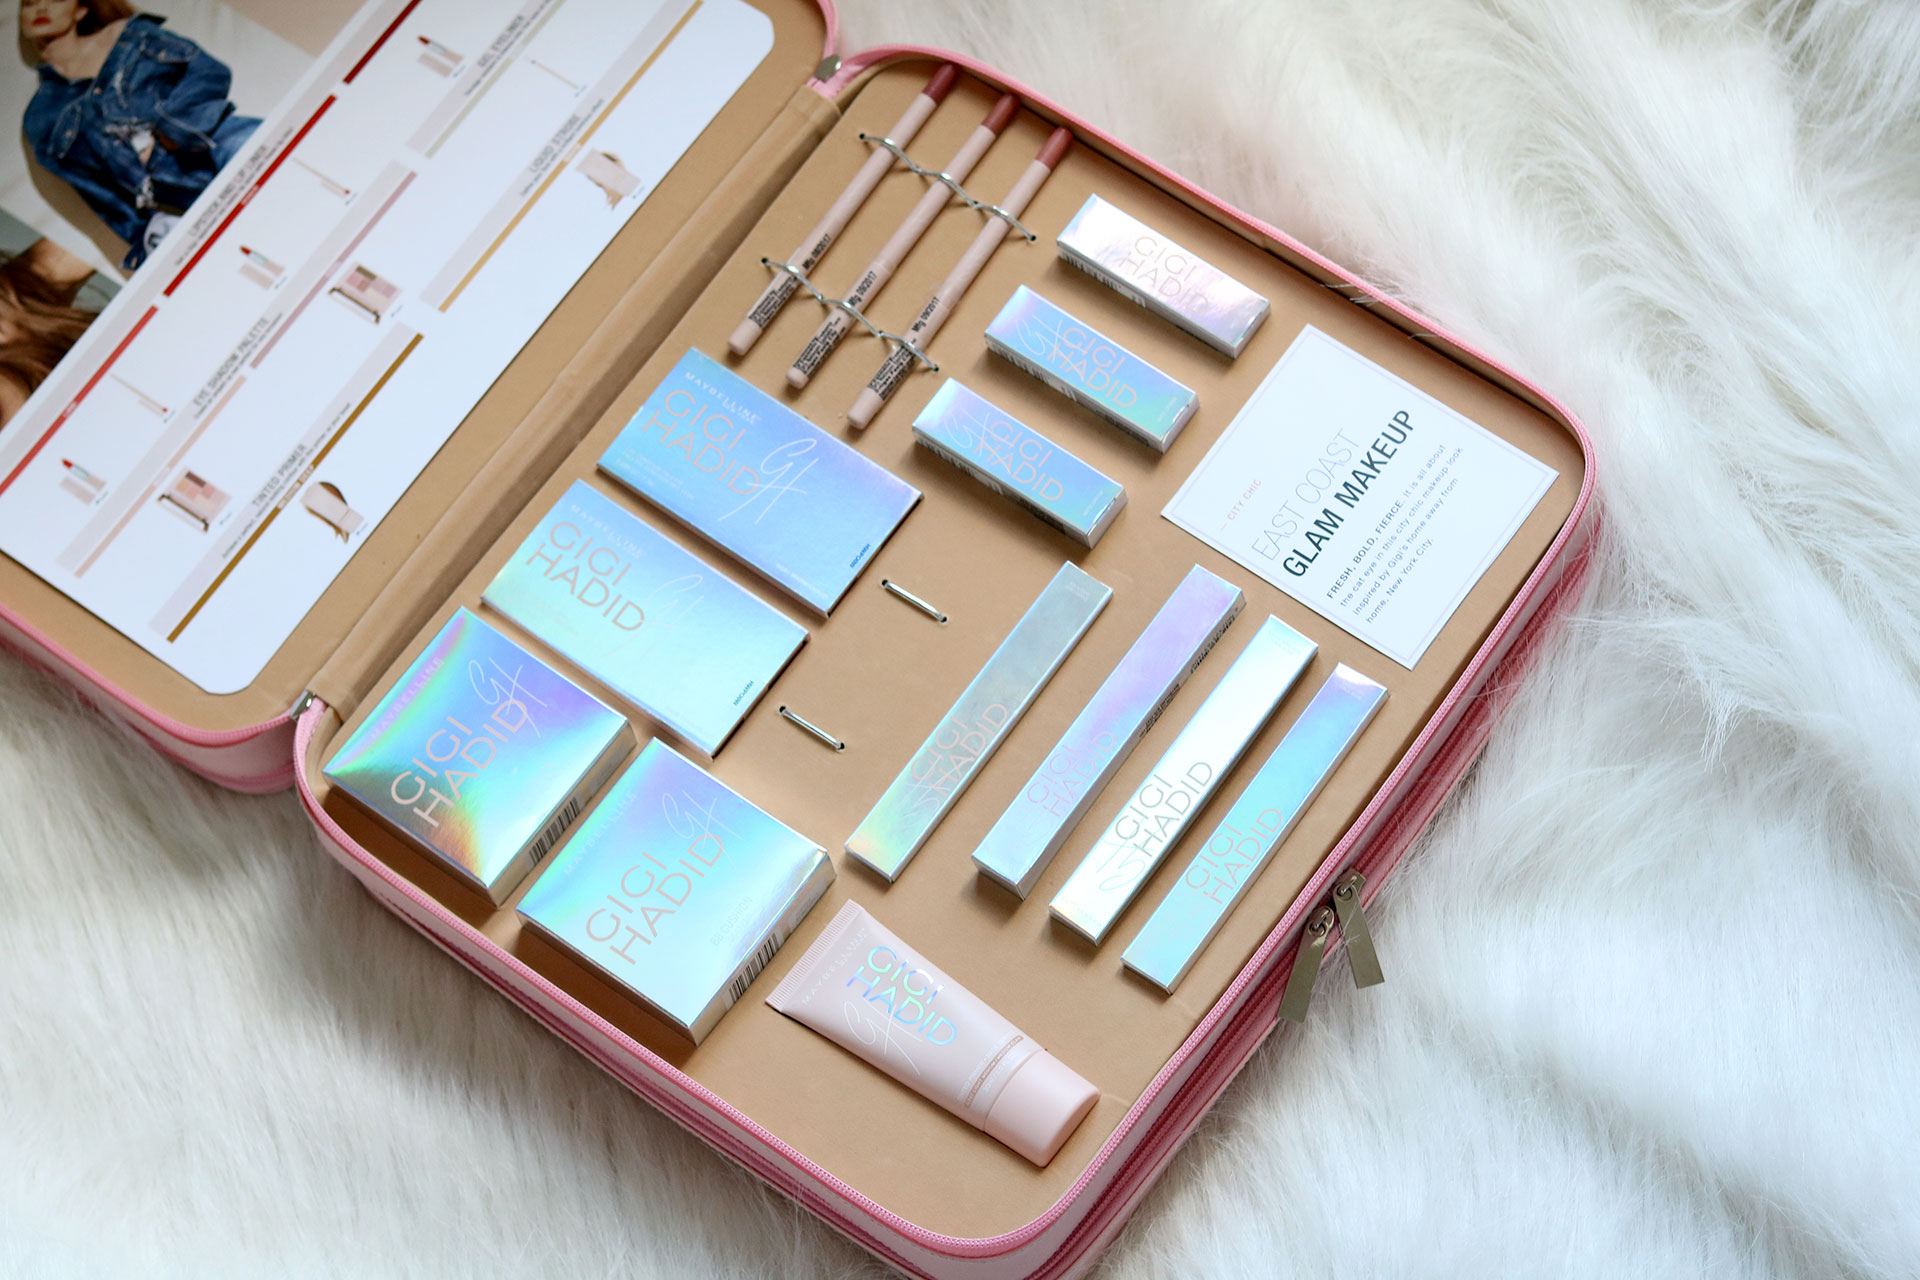 3 Gigi Hadid Maybelline Collection Review Swatches Photos - Gen-zel She Sings Beauty